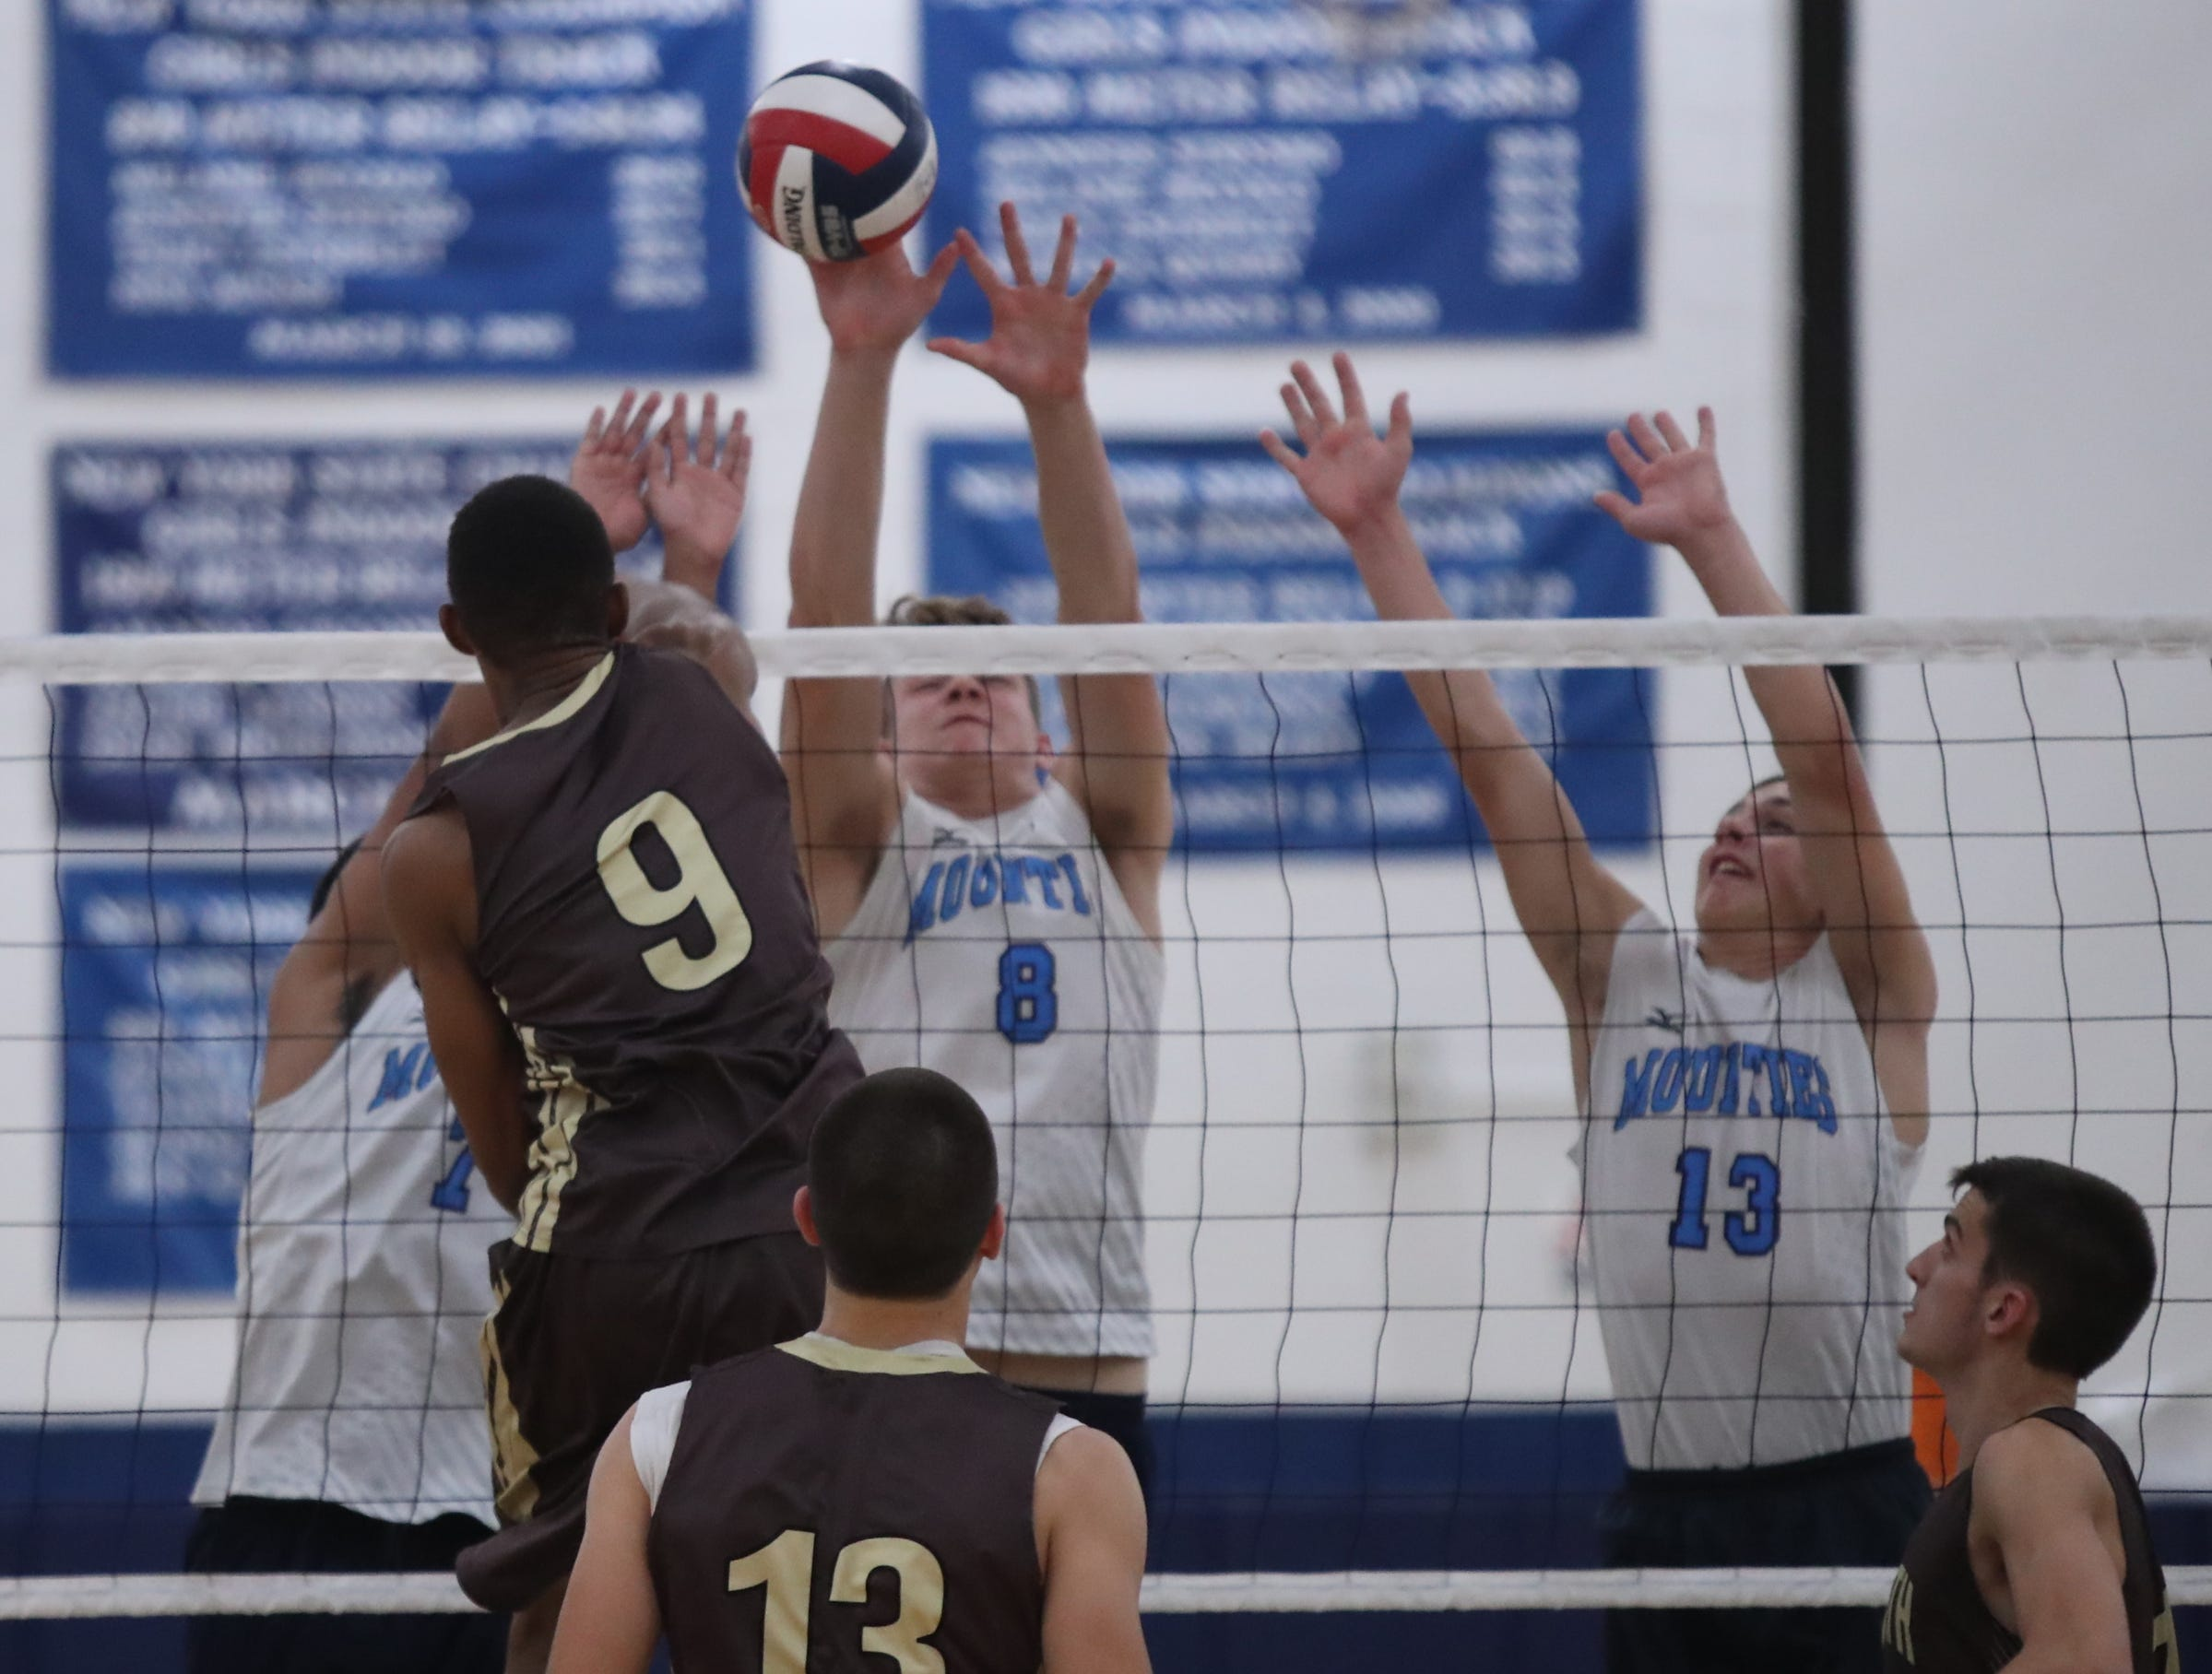 Suffern's Danny Kenny (8) gets a block as Clarkstown South's Fisher Miles (9) comnects with a shot during their 3-1 win in boys volleyball action at Suffern High School in Suffern on Thursday, October 11, 2018.